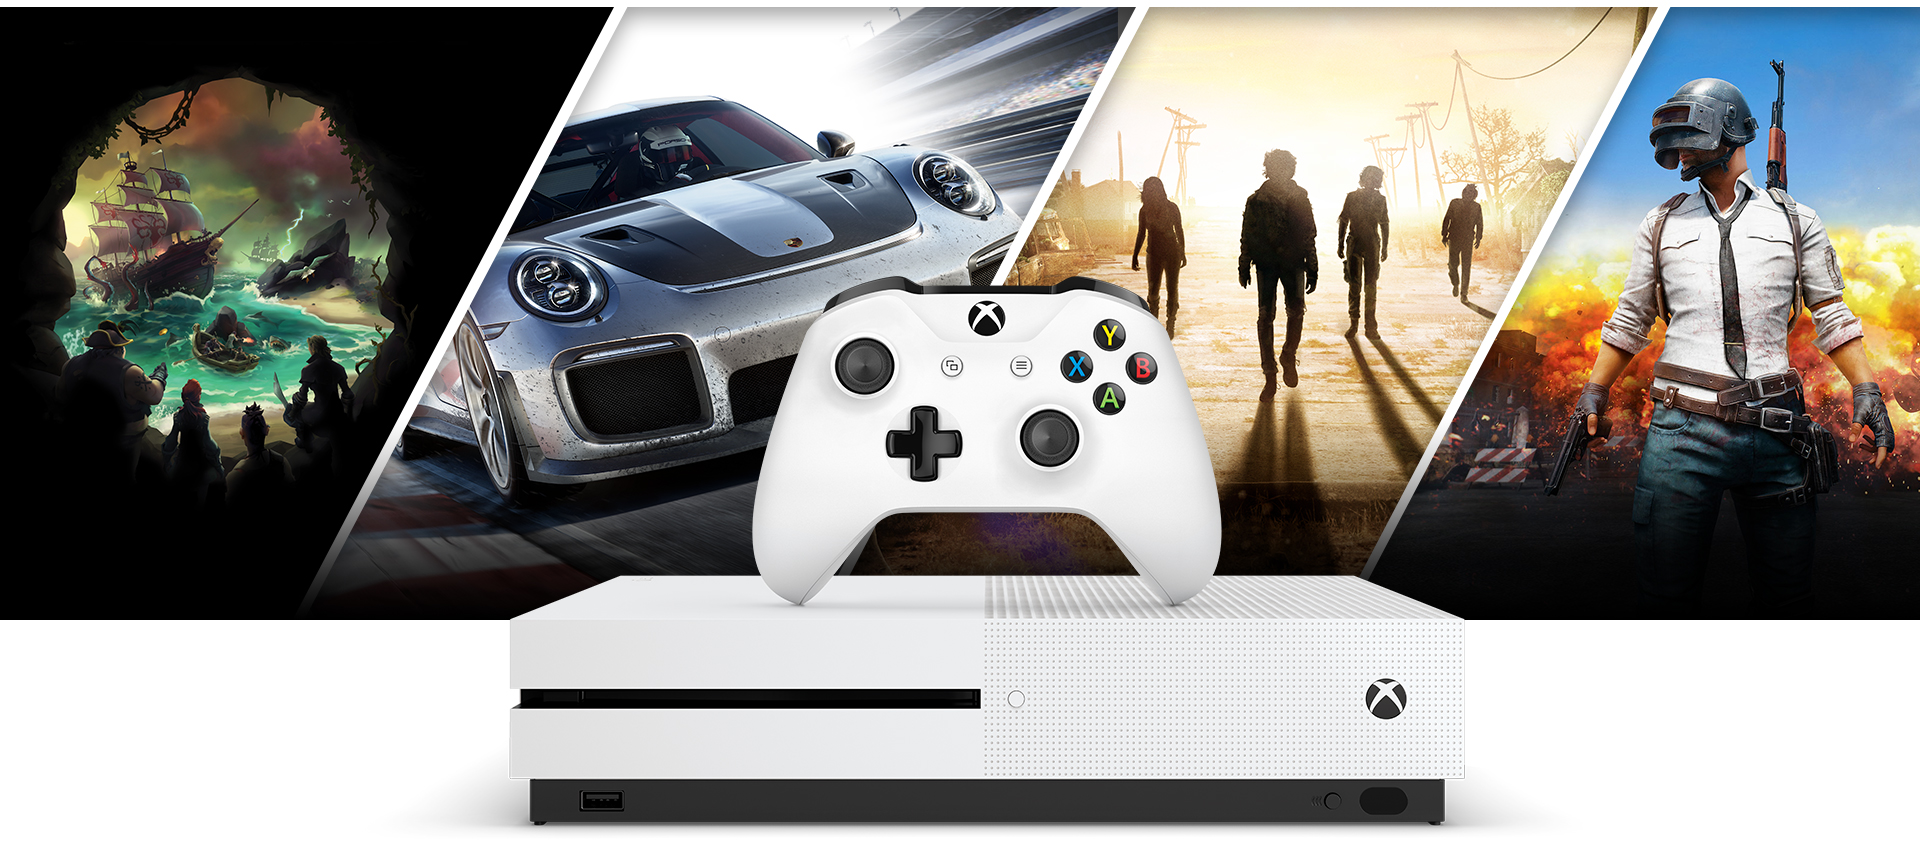 Xbox One S と白の Xbox コントローラーの背後に Sea of Thieves Forza 7 State of Decay 3 と Player Unknown's Battlegrounds の画像